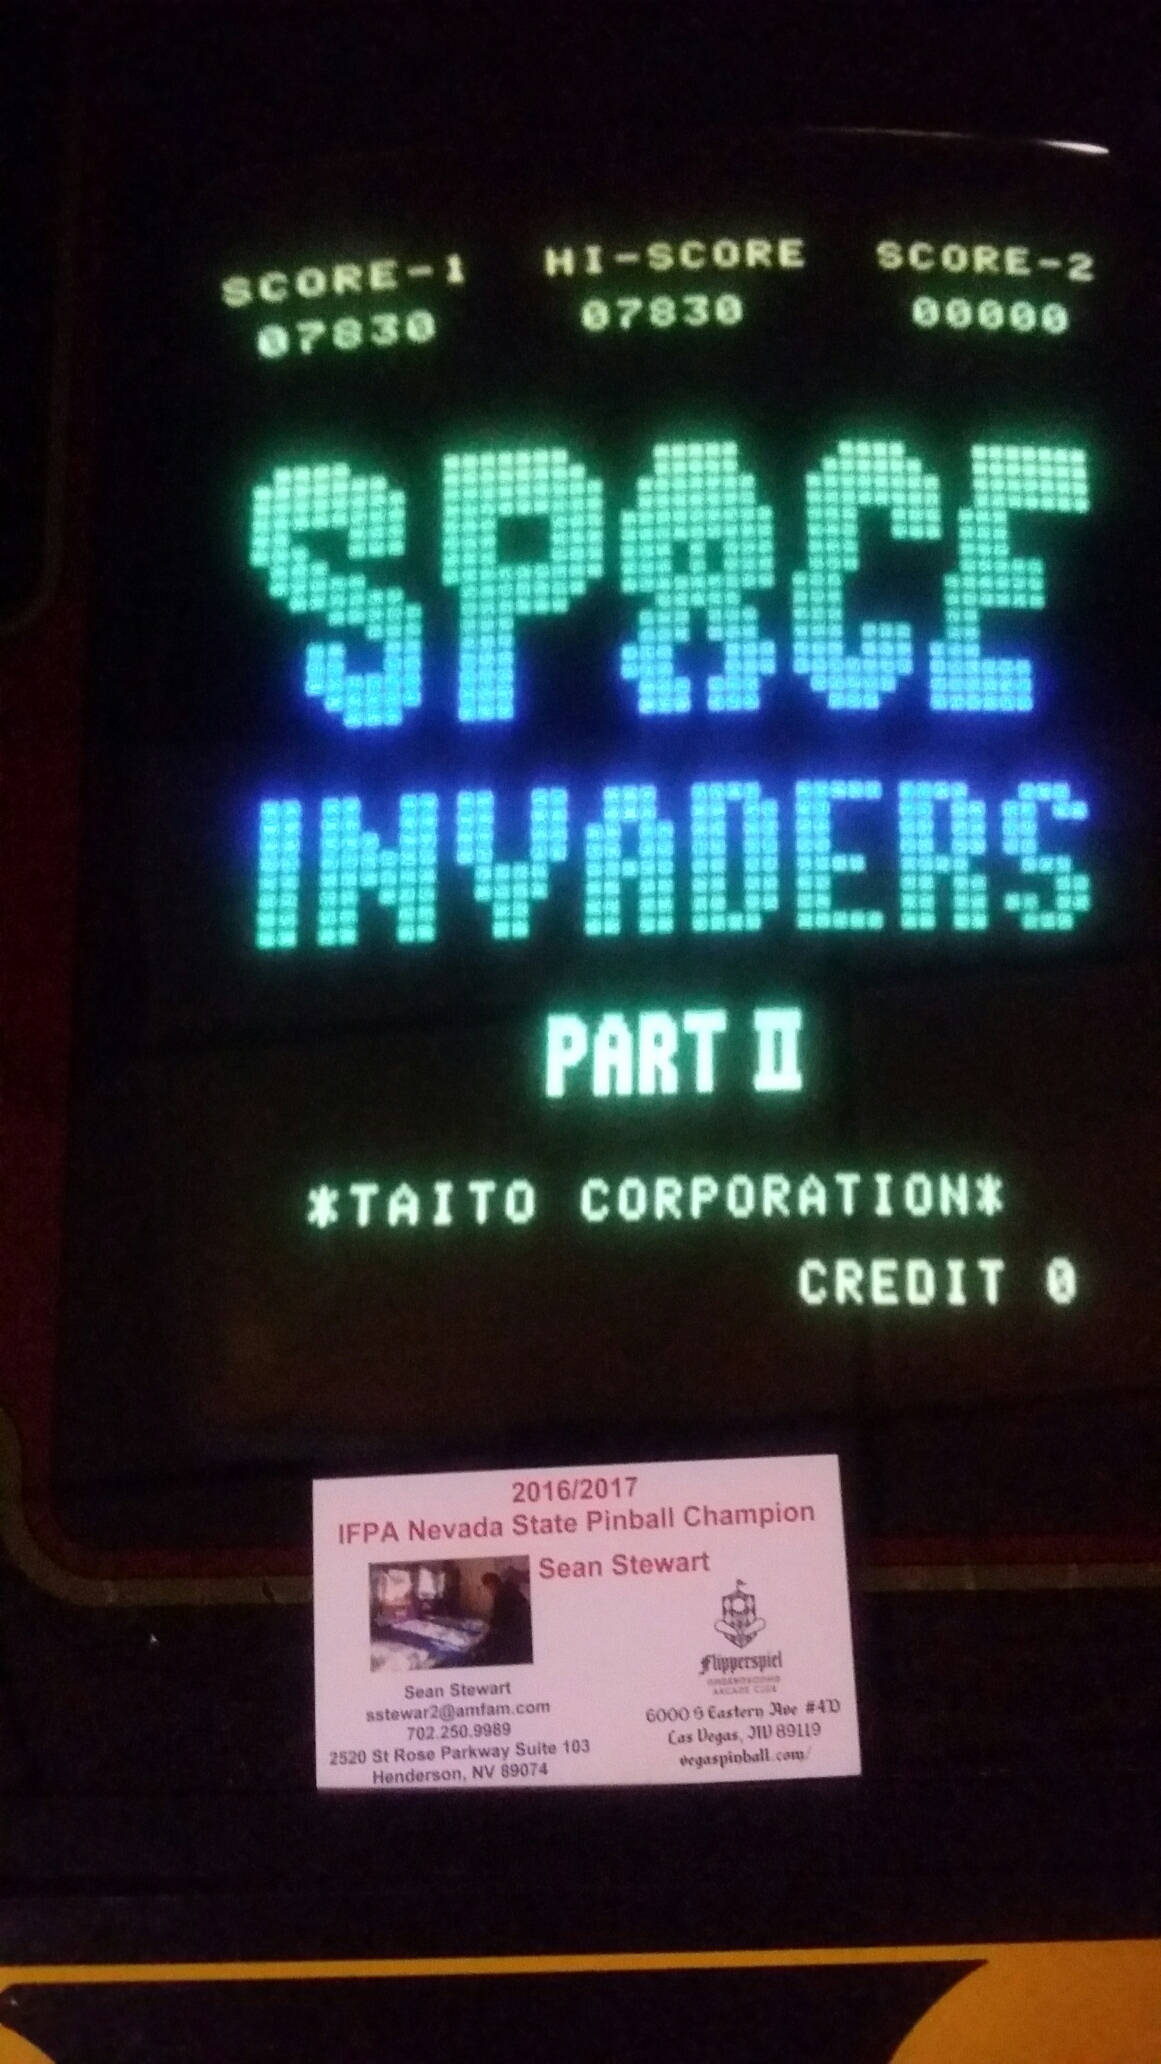 SeanStewart: Space Invaders Deluxe (Arcade) 7,830 points on 2017-05-09 14:01:14